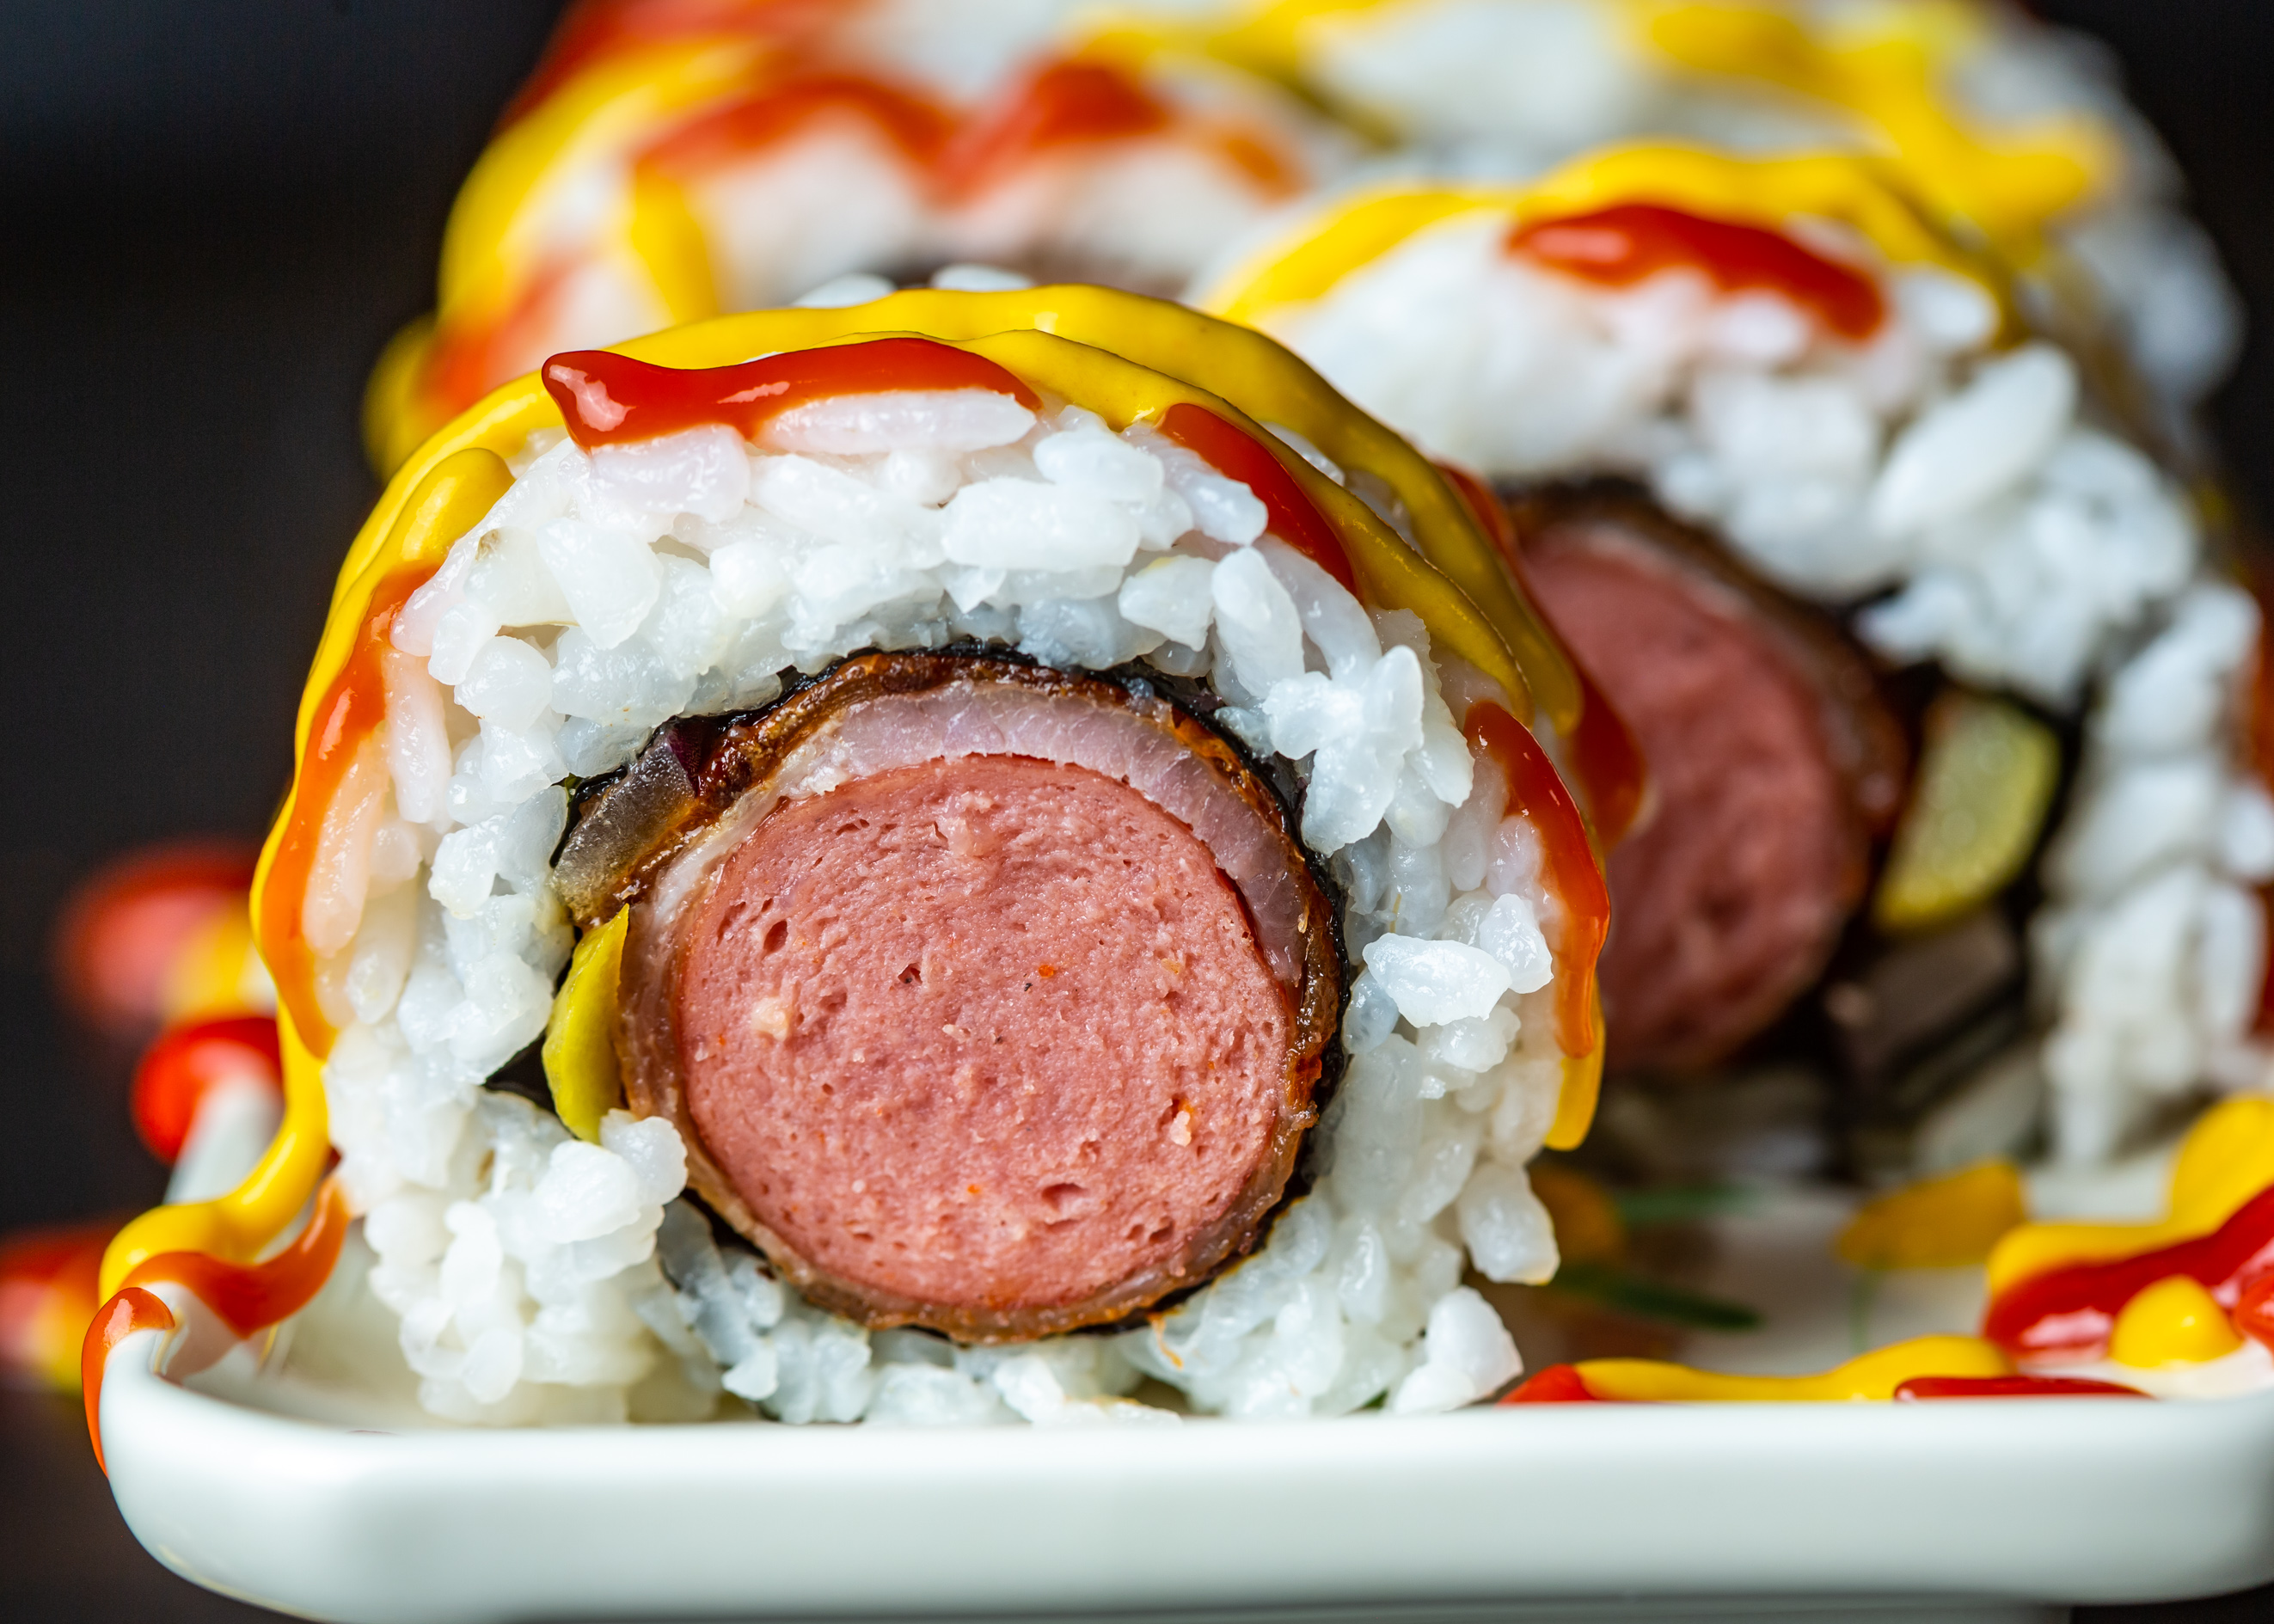 bacon-wrapped hot dog sushi